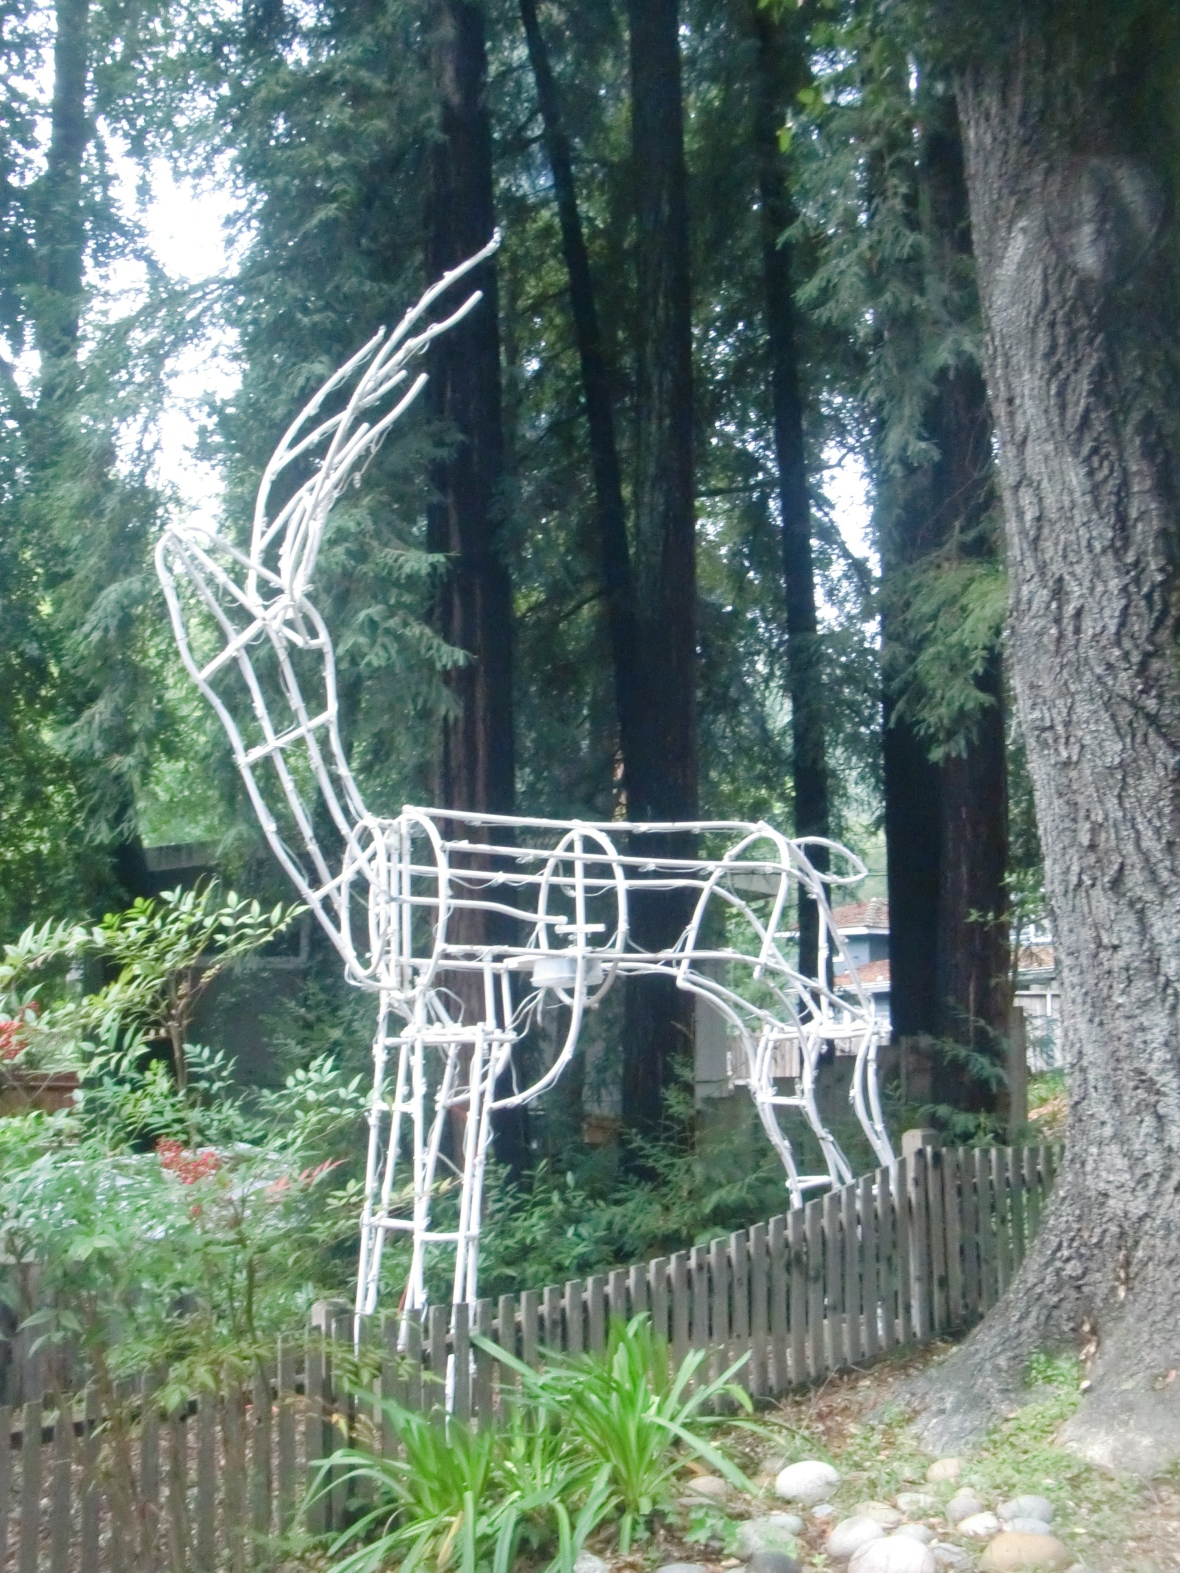 This is a 20' Christmas light deer that someone made.  I'm going to go futon a limb and sway there was no app involved in any part of its construction.